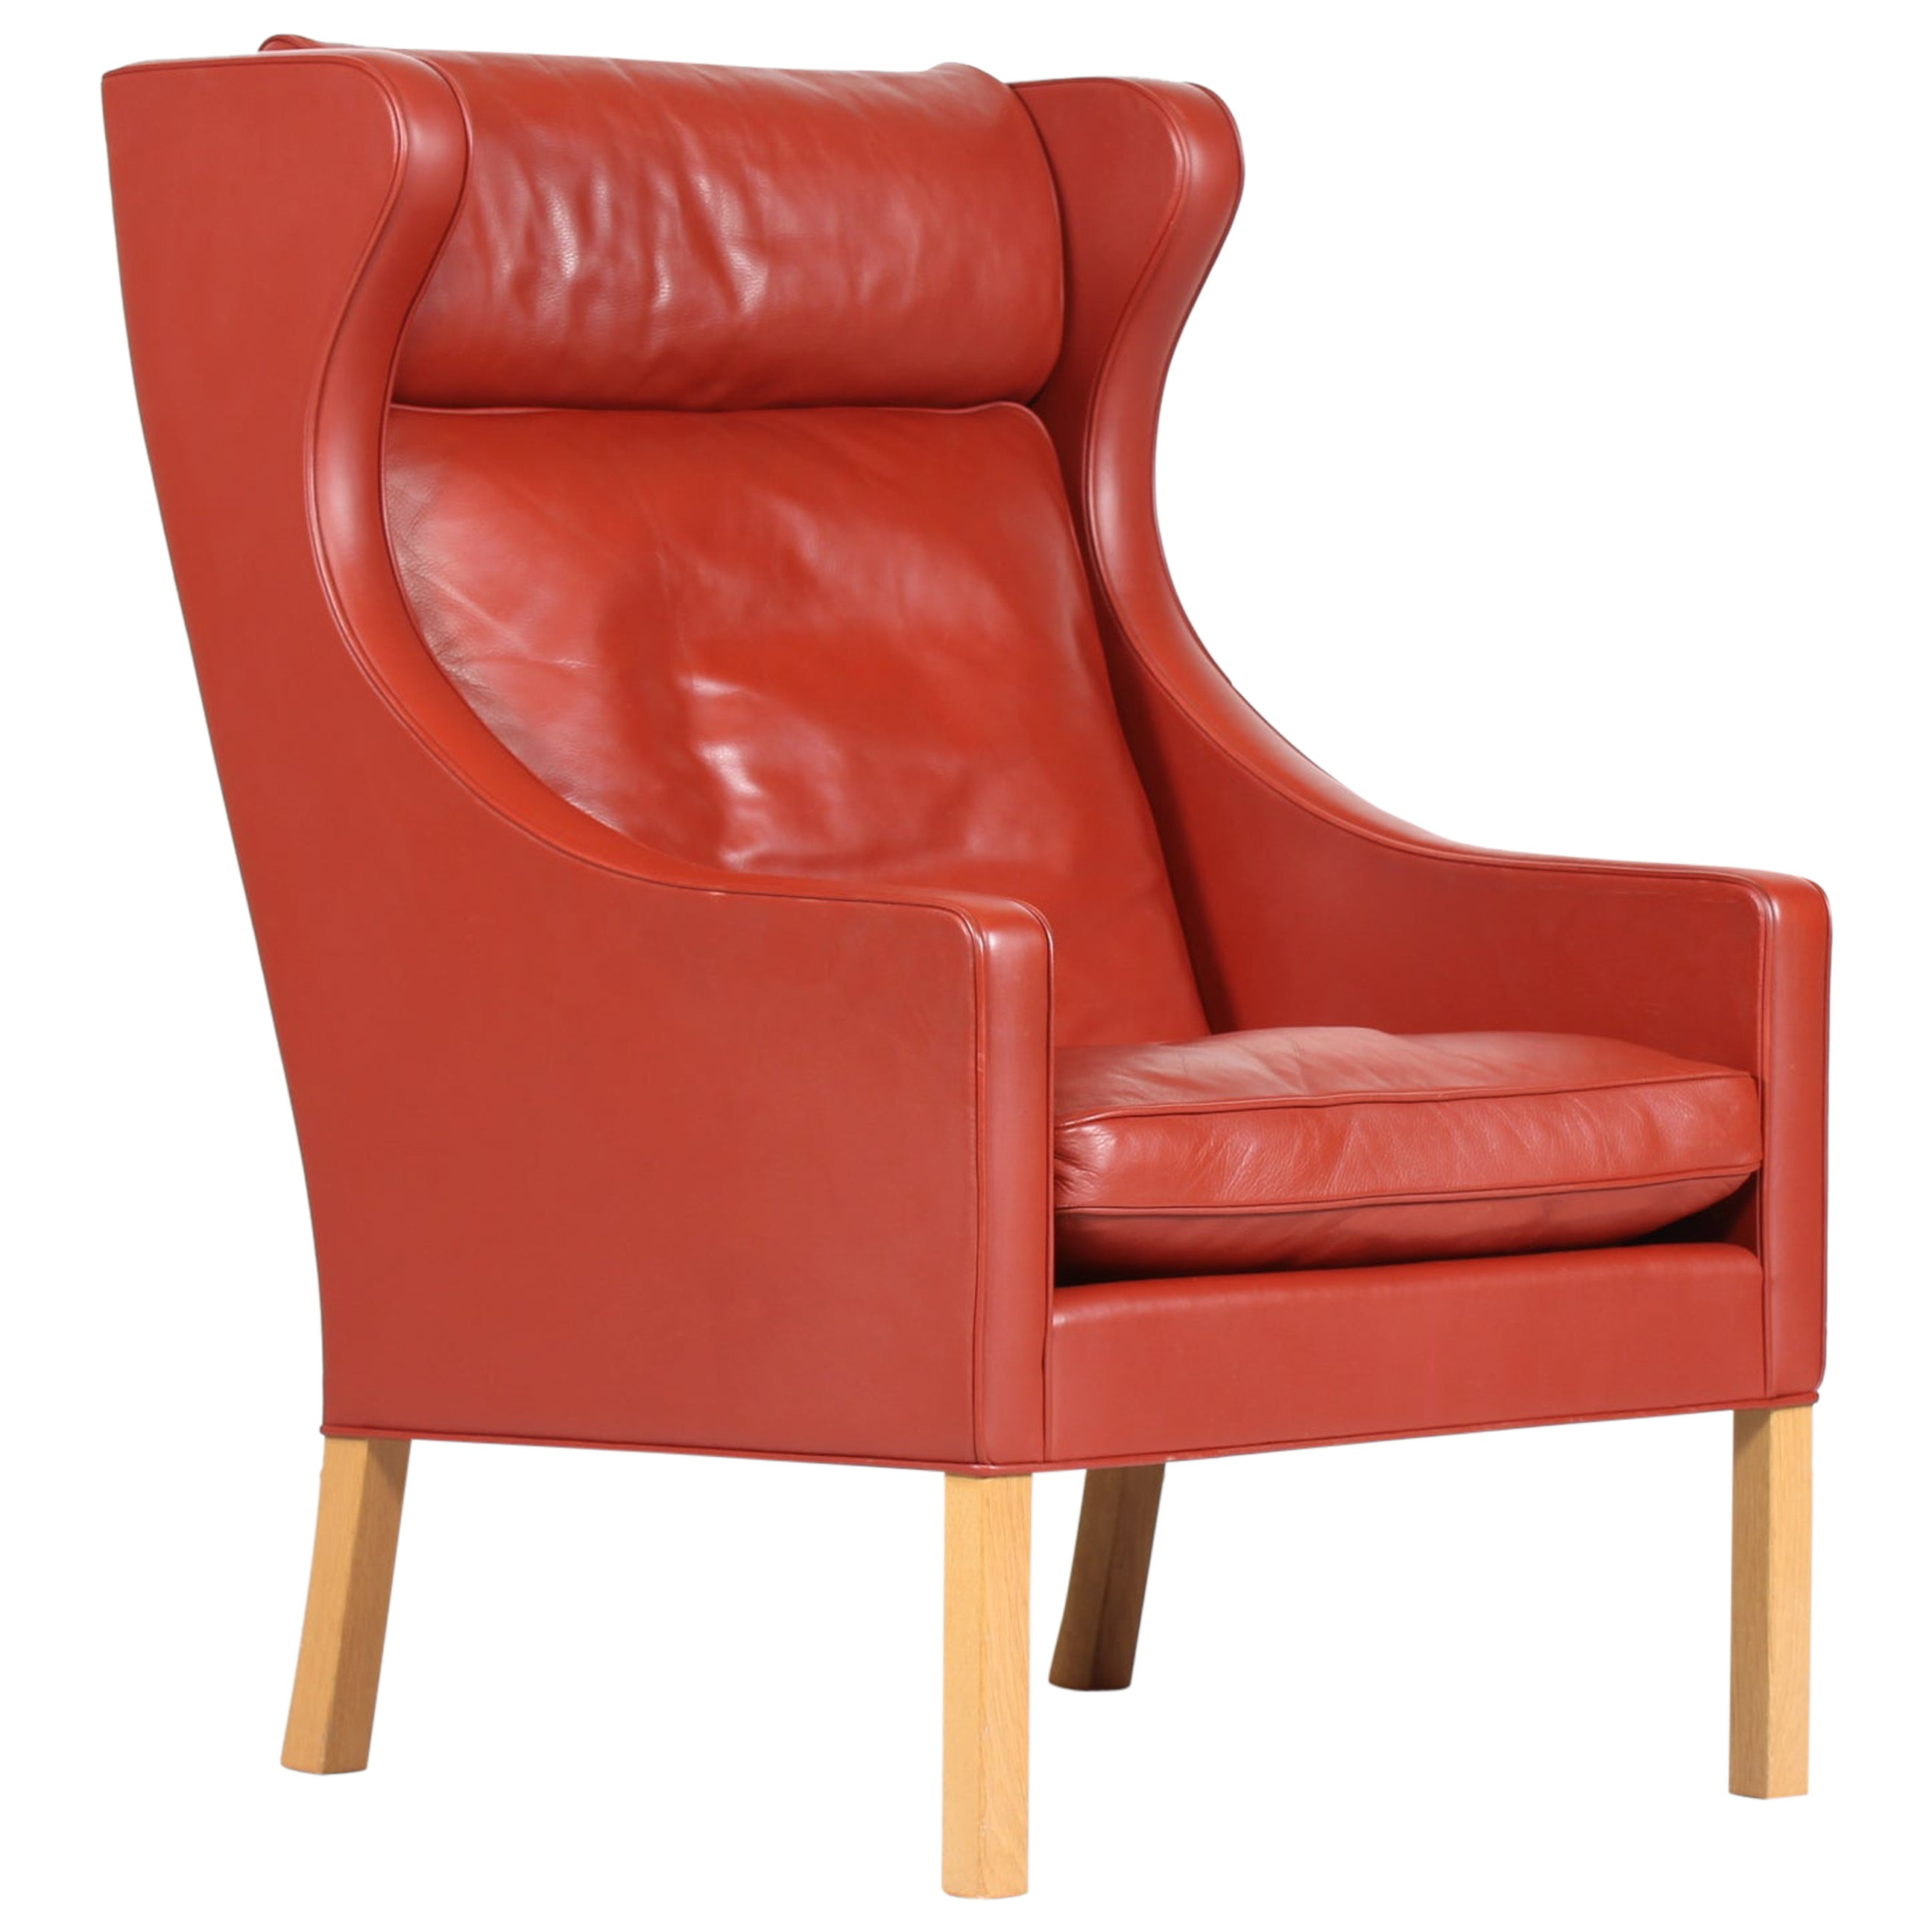 Red Leather Wingback Chairs 5 For Sale On 1stdibs